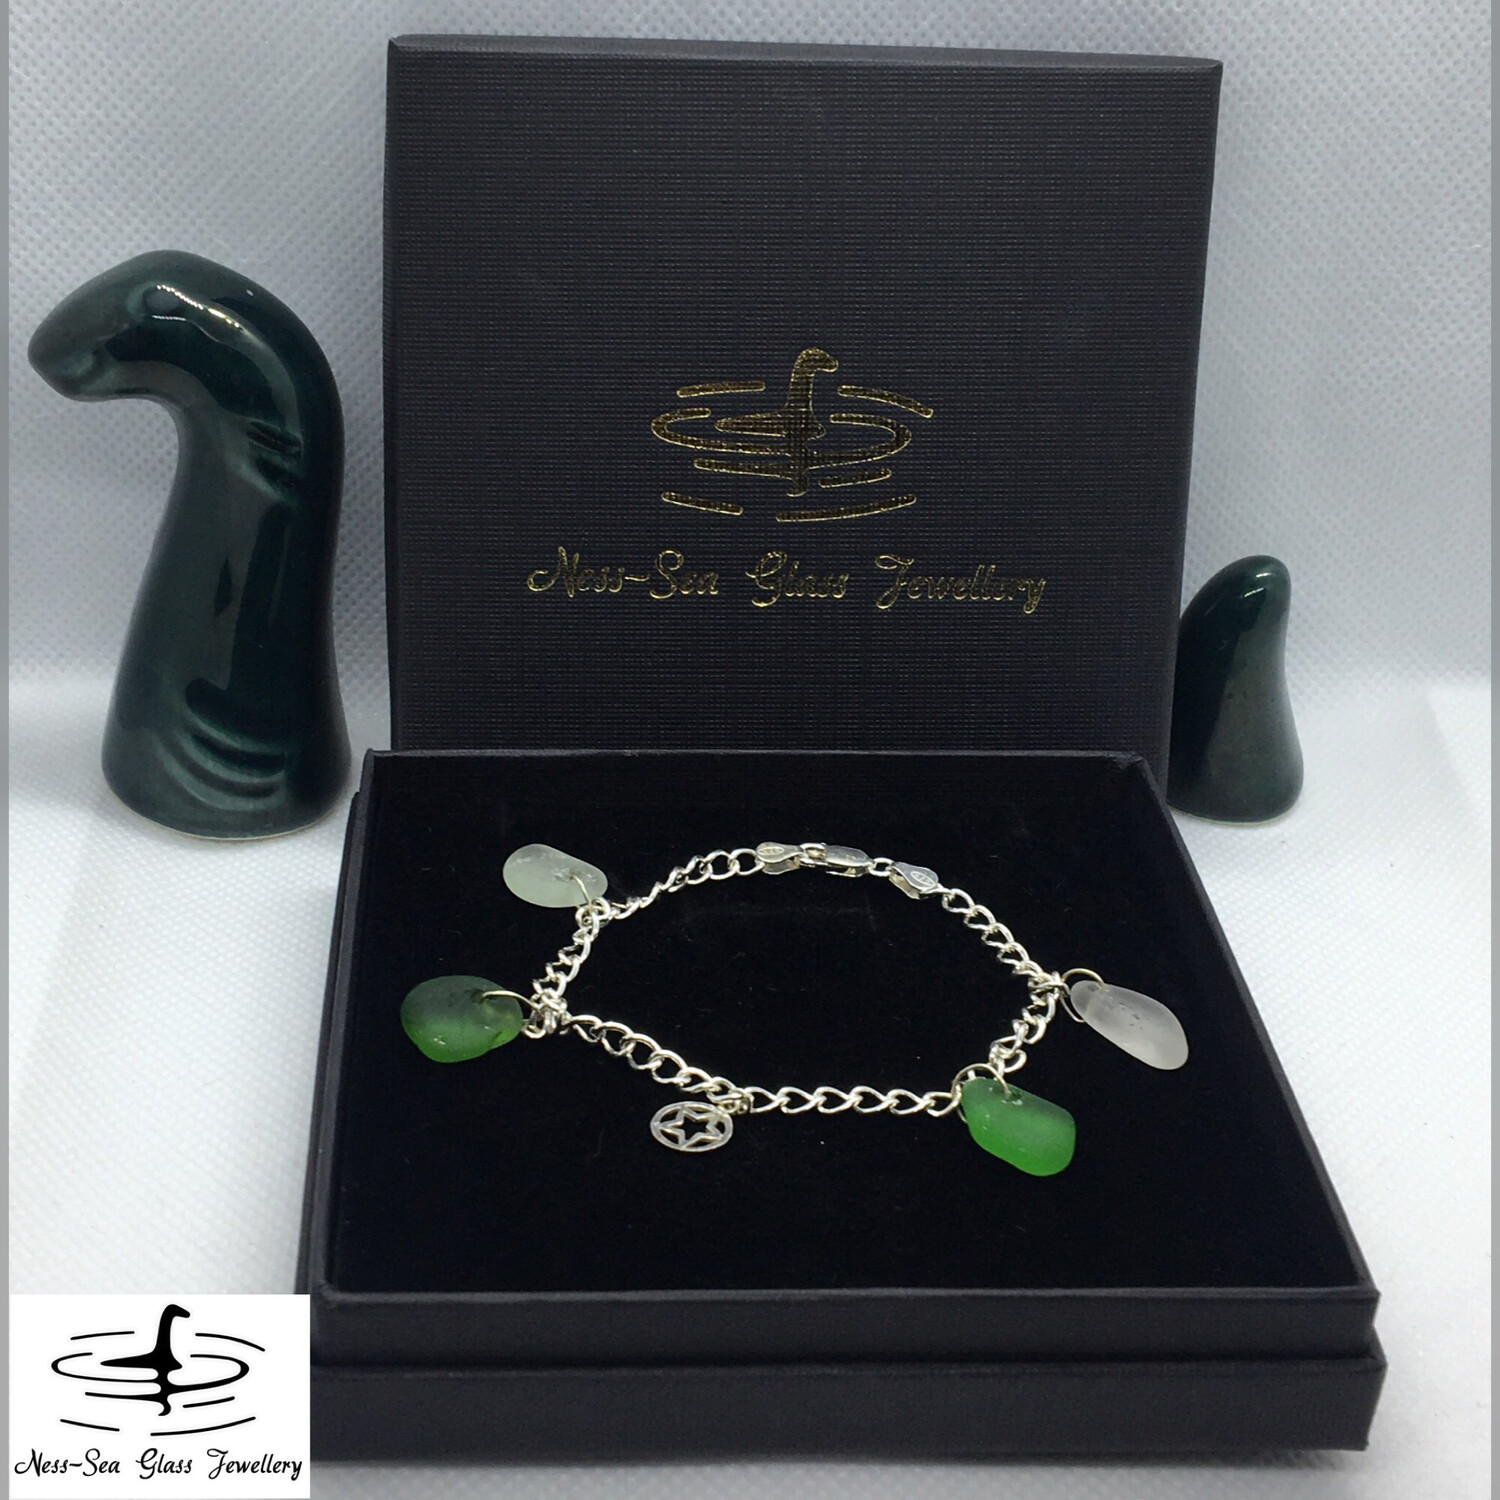 Clear, light blue and Green Loch Ness Sea Glass Sterling Silver Charm Bracelet with Star Charm